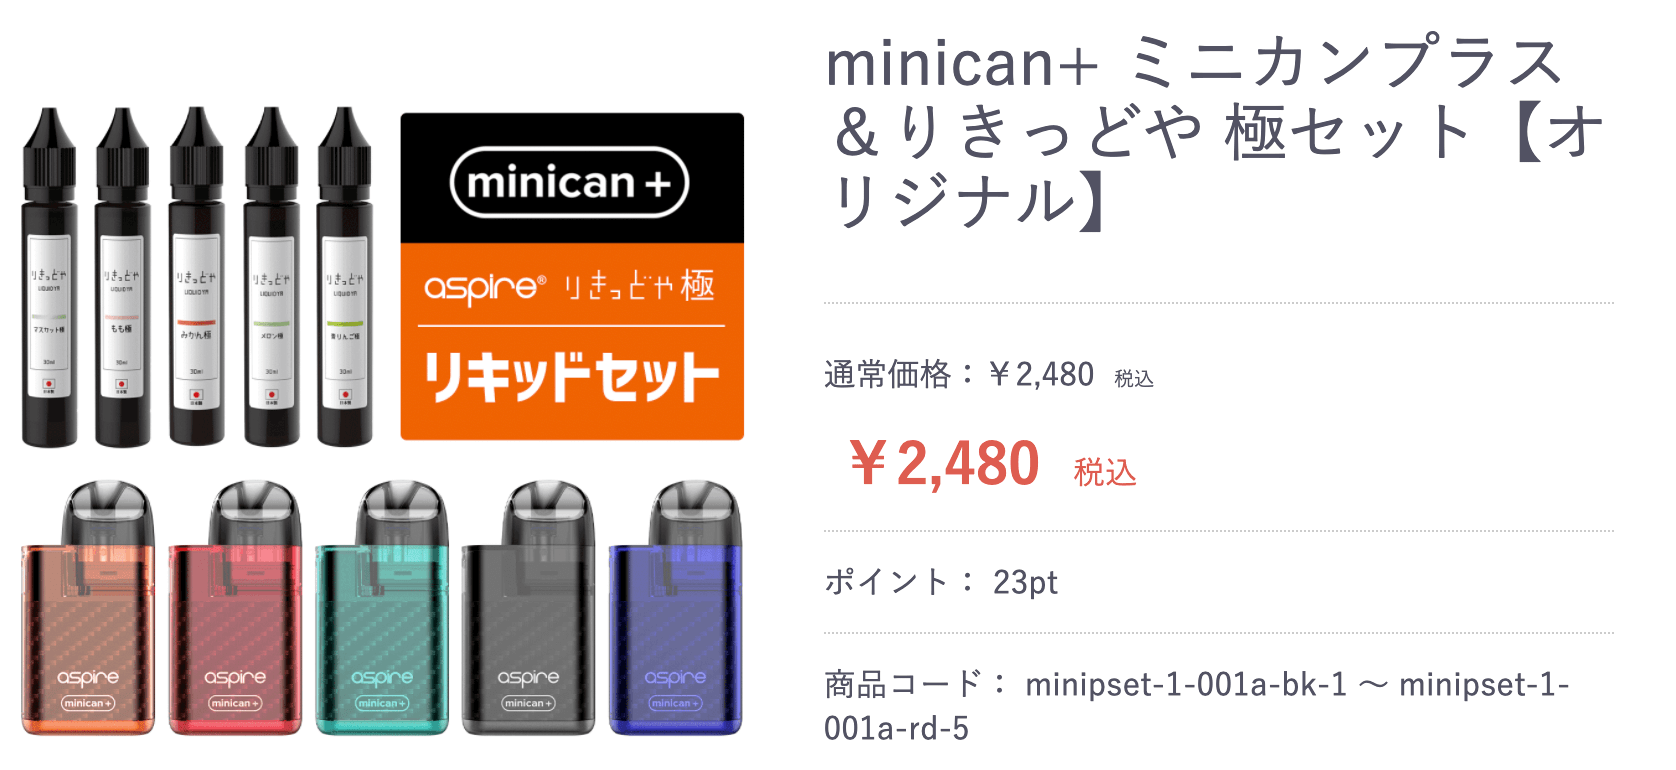 minicanプラス リキッドセット